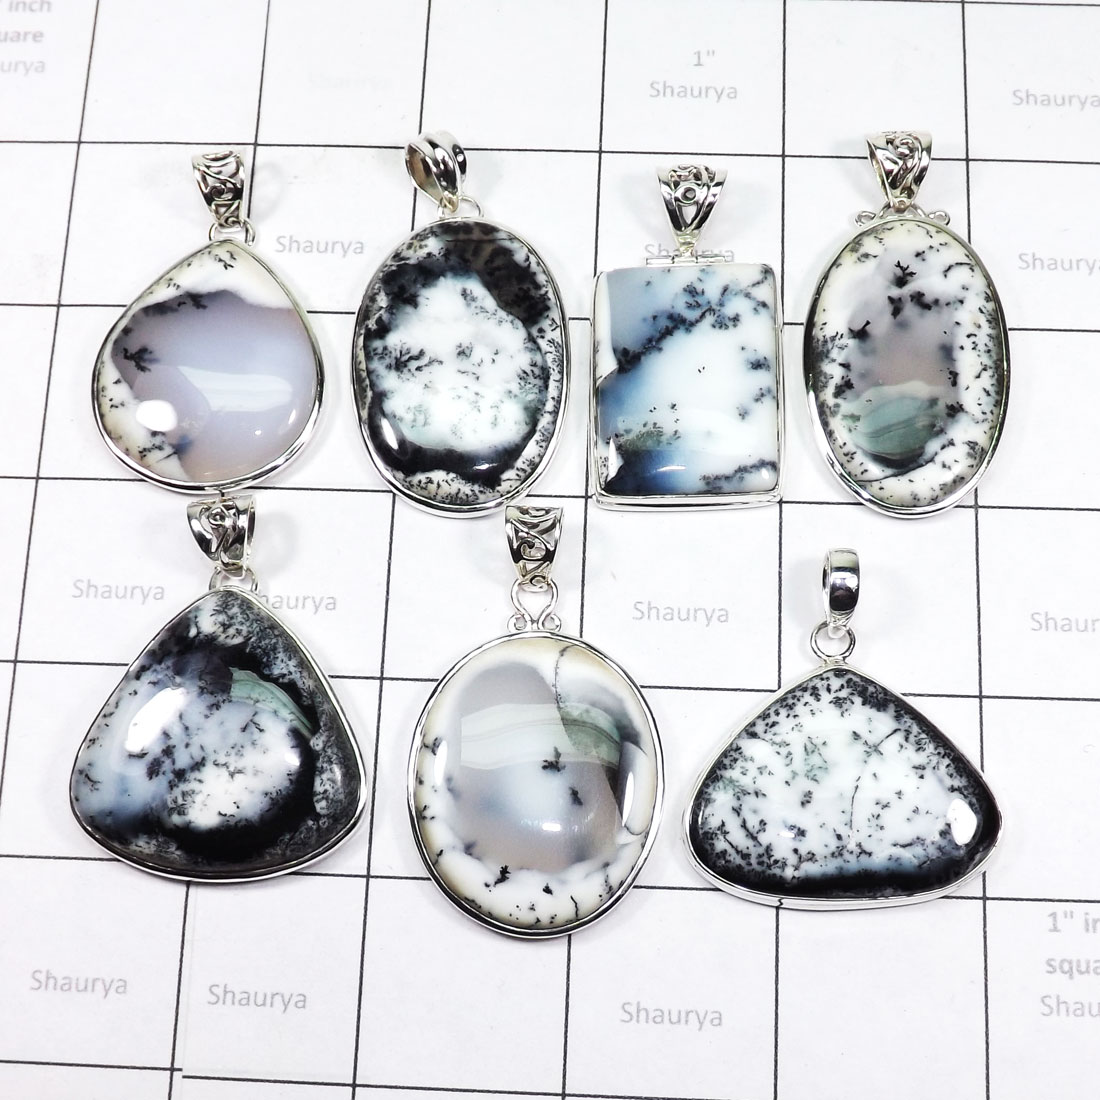 WSL973-Wholesale Dendritic Agate With 925 Sterling Silver 100 gram Pendants 7 Pcs